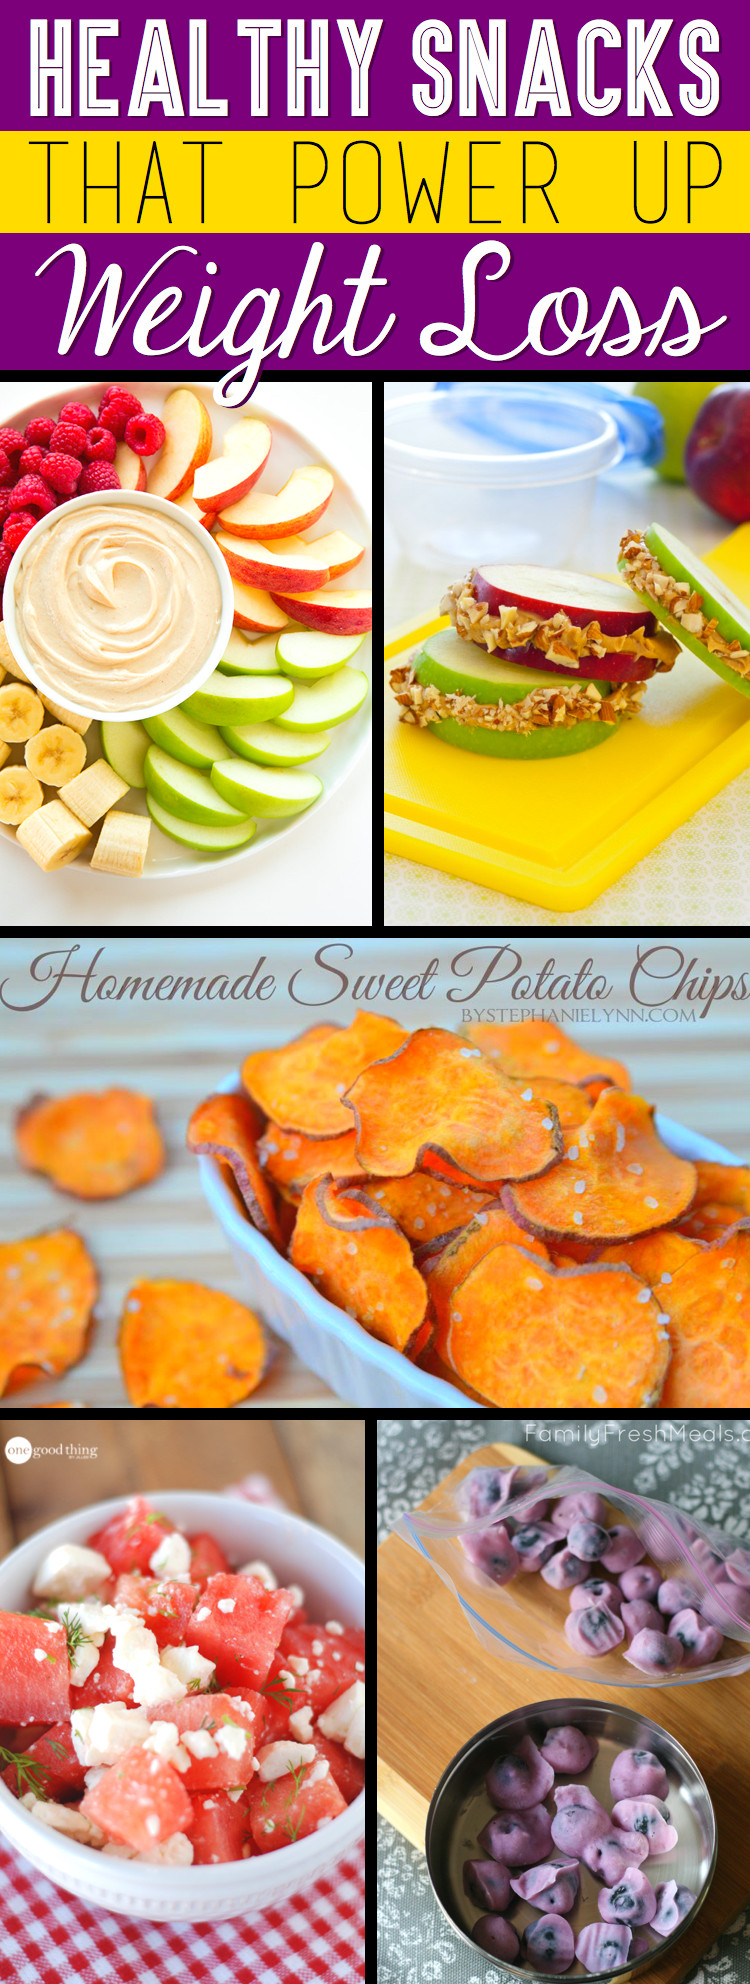 Healthy Snack Recipes For Weight Loss  Diy Easy Snacks To Make At Home Diy Do It Your Self